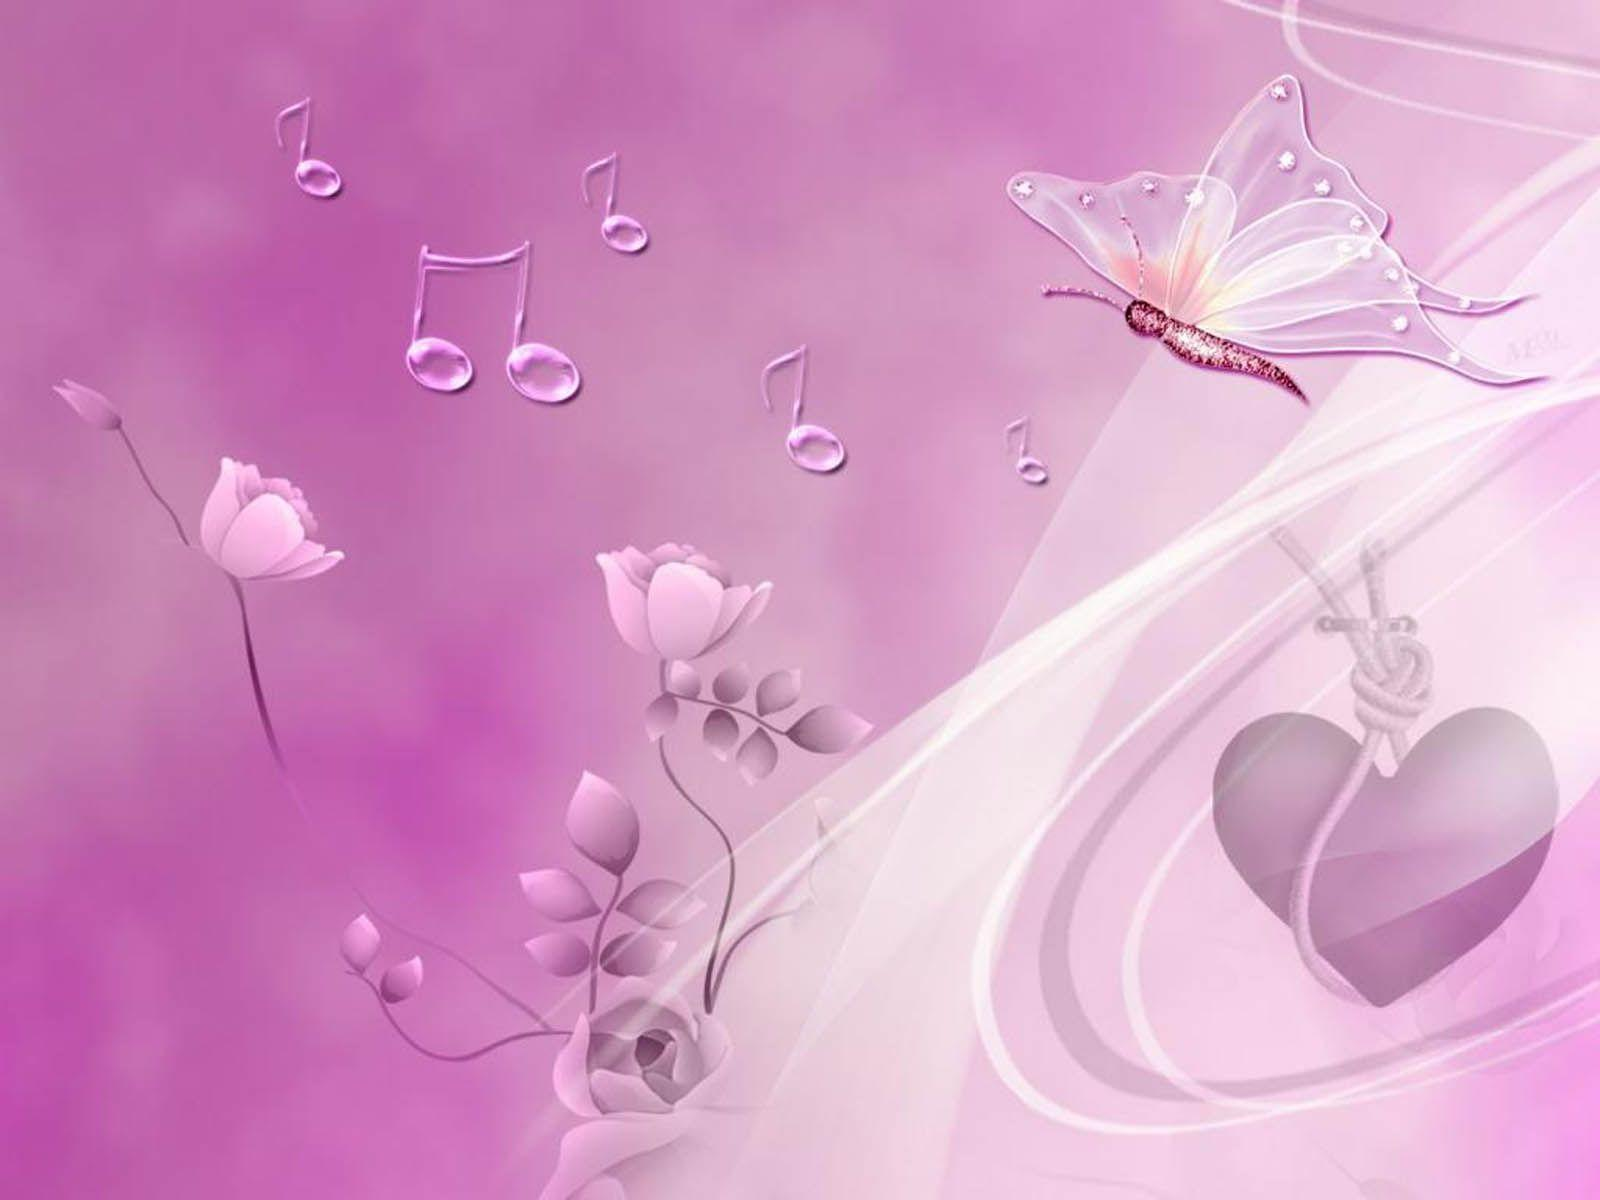 Background Wallpaper Design Love : Free Butterfly Desktop Backgrounds - Wallpaper cave